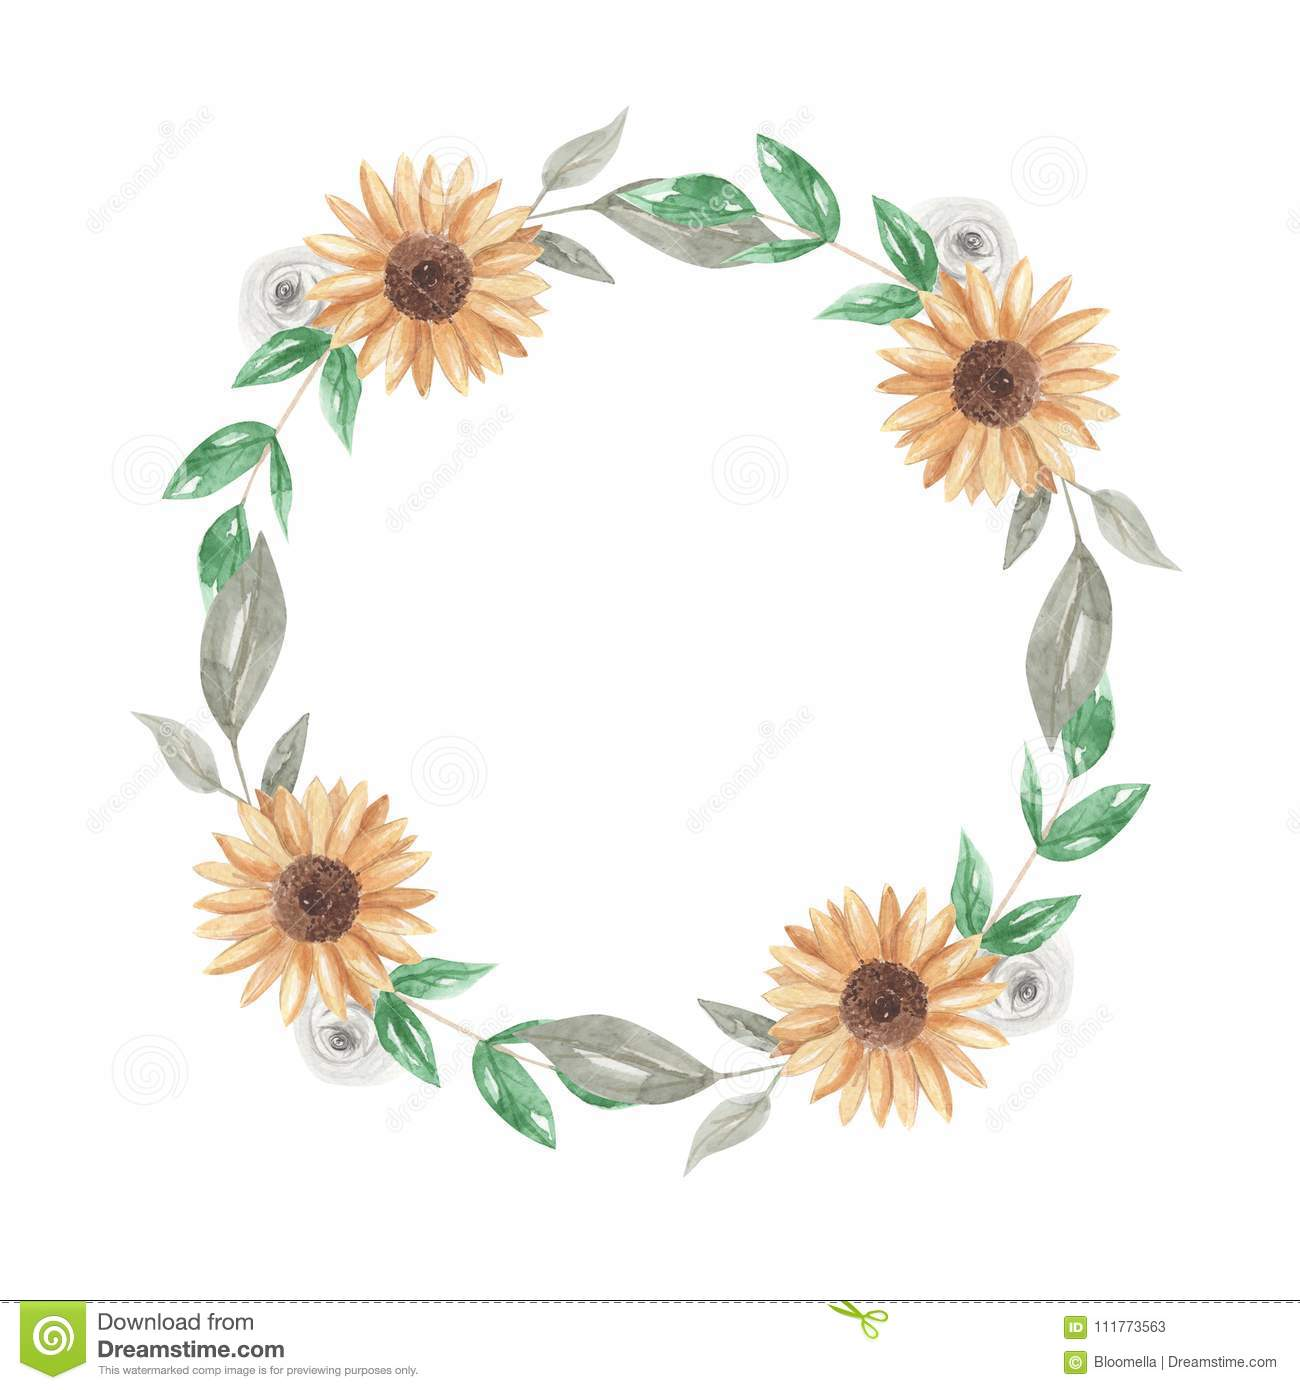 Sunflowers Watercolor Wreath Garland Clipart Flowers White Roses Stock Illustration Illustration Of Drawn Detailed 111773563